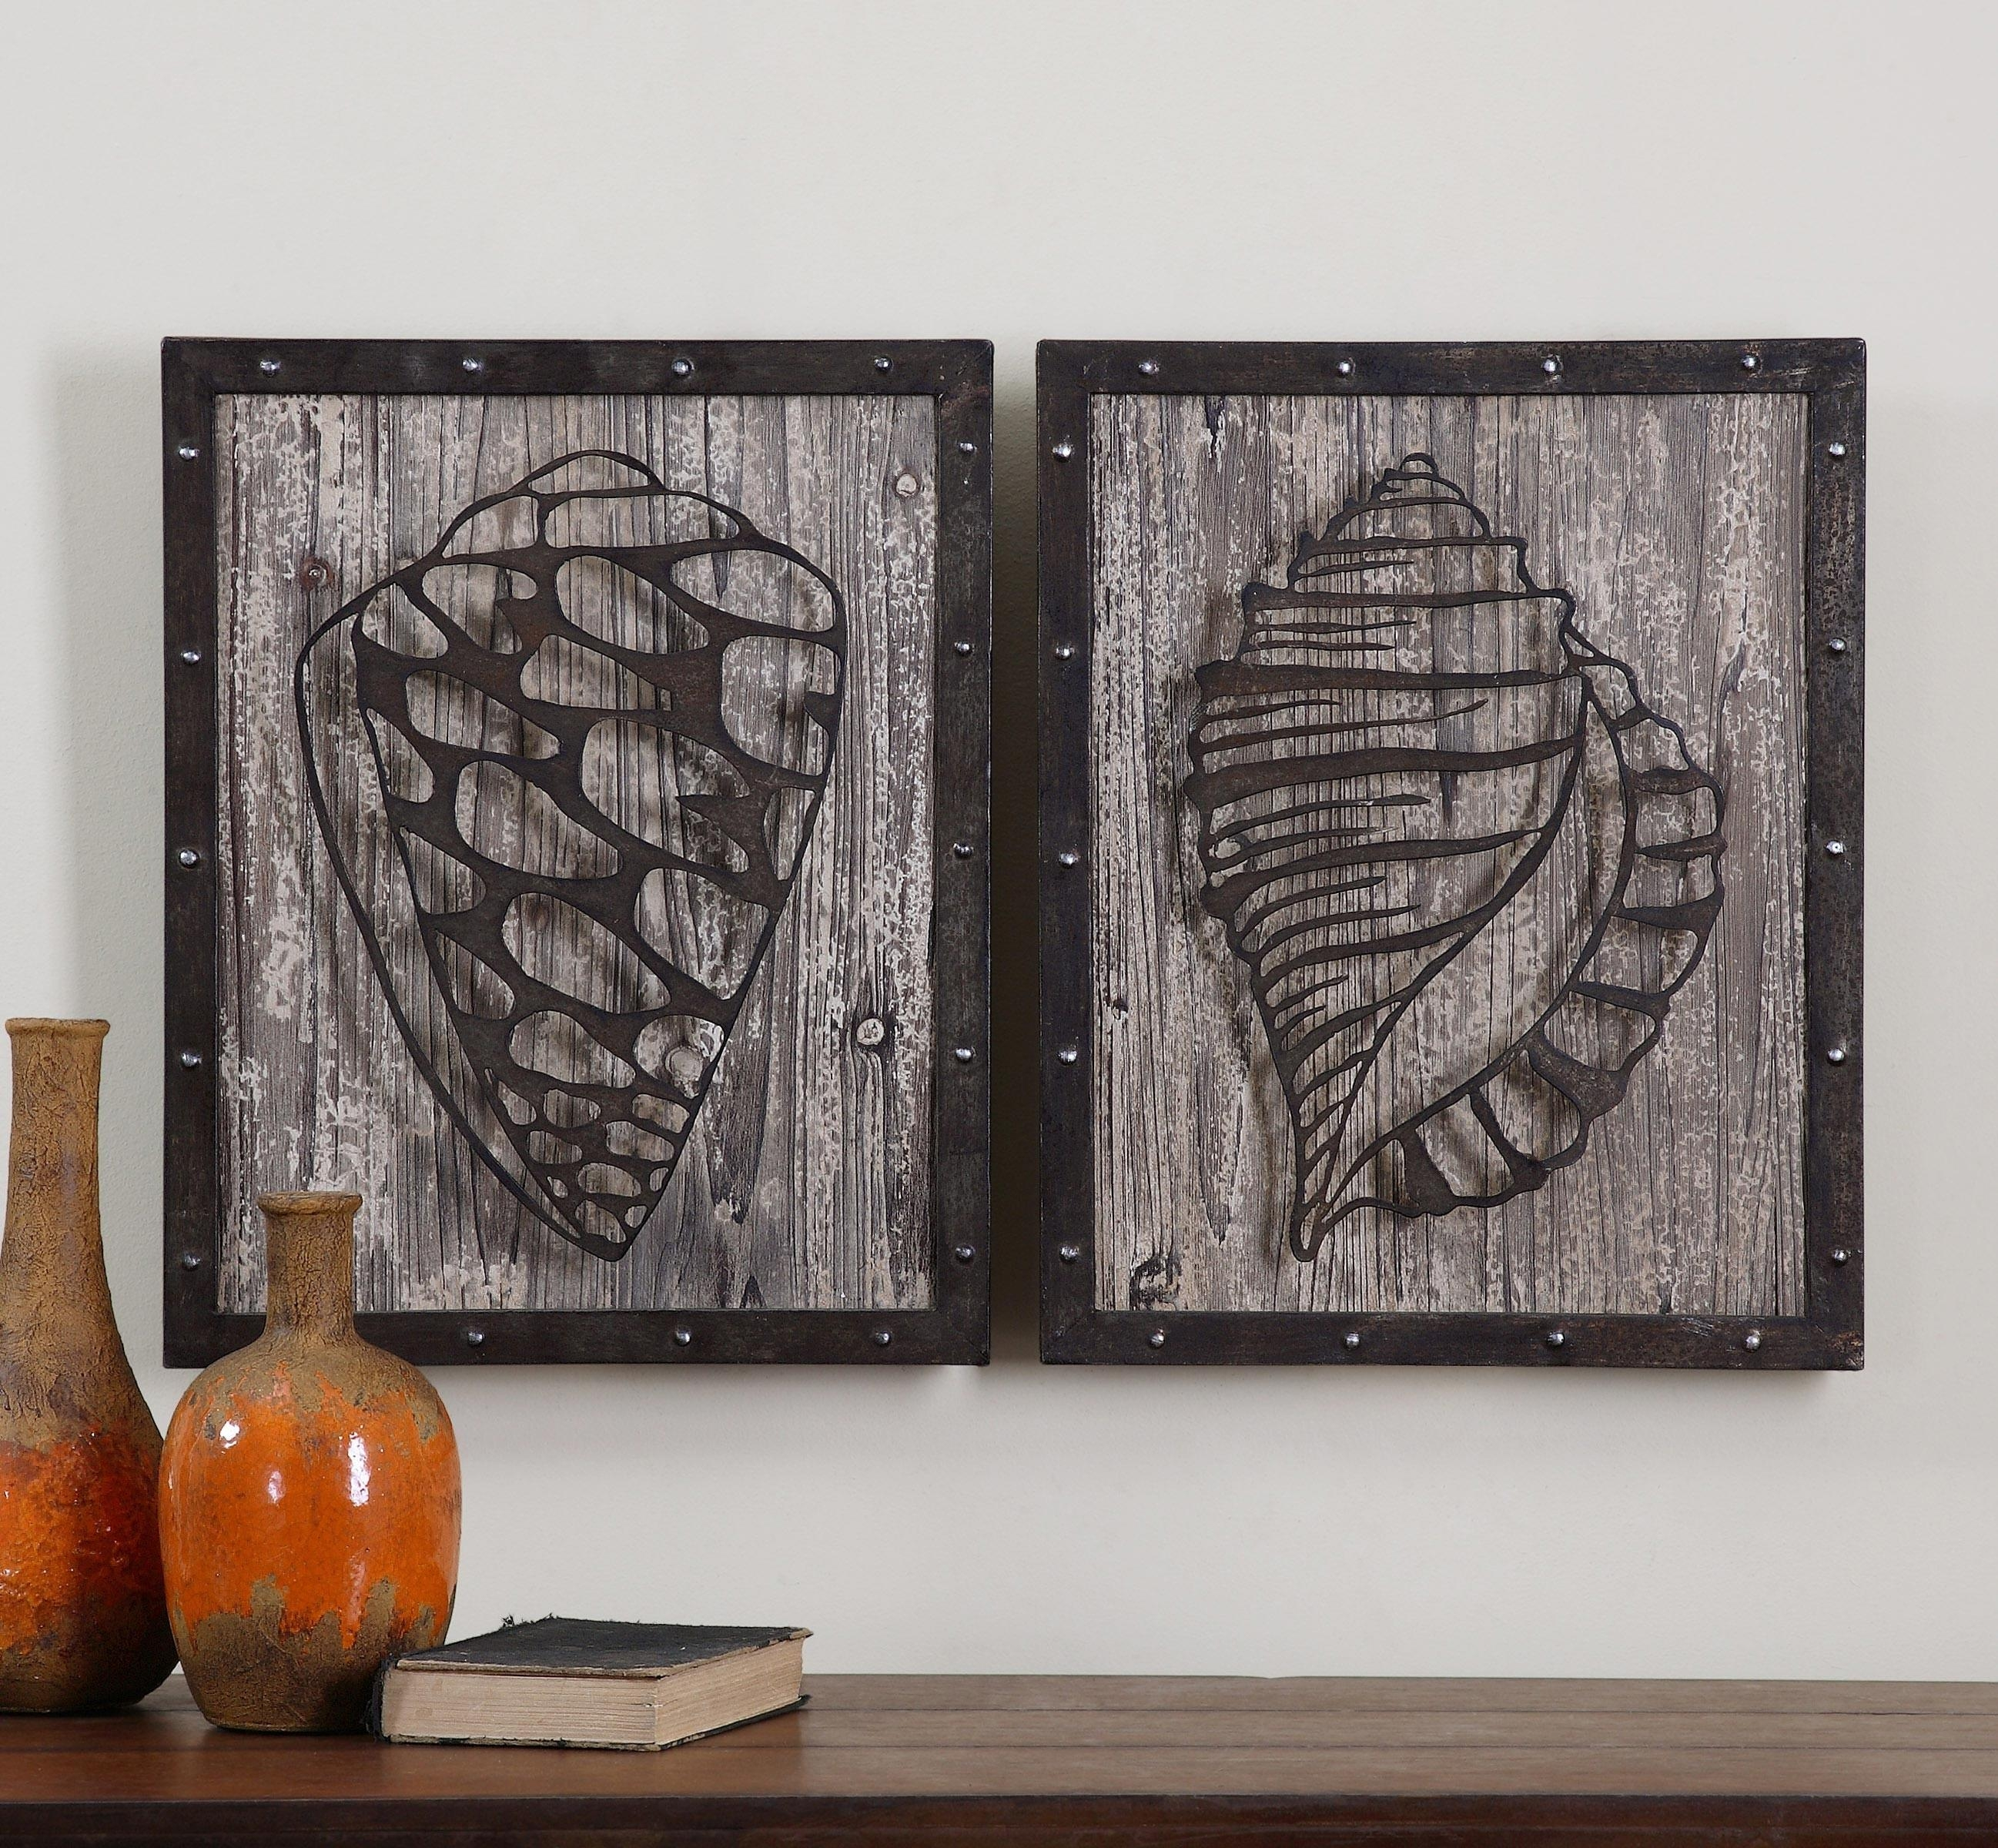 Home Design : Rustic Wood And Metal Wall Art Asian Large Rustic In Wood And Iron Wall Art (Image 7 of 20)